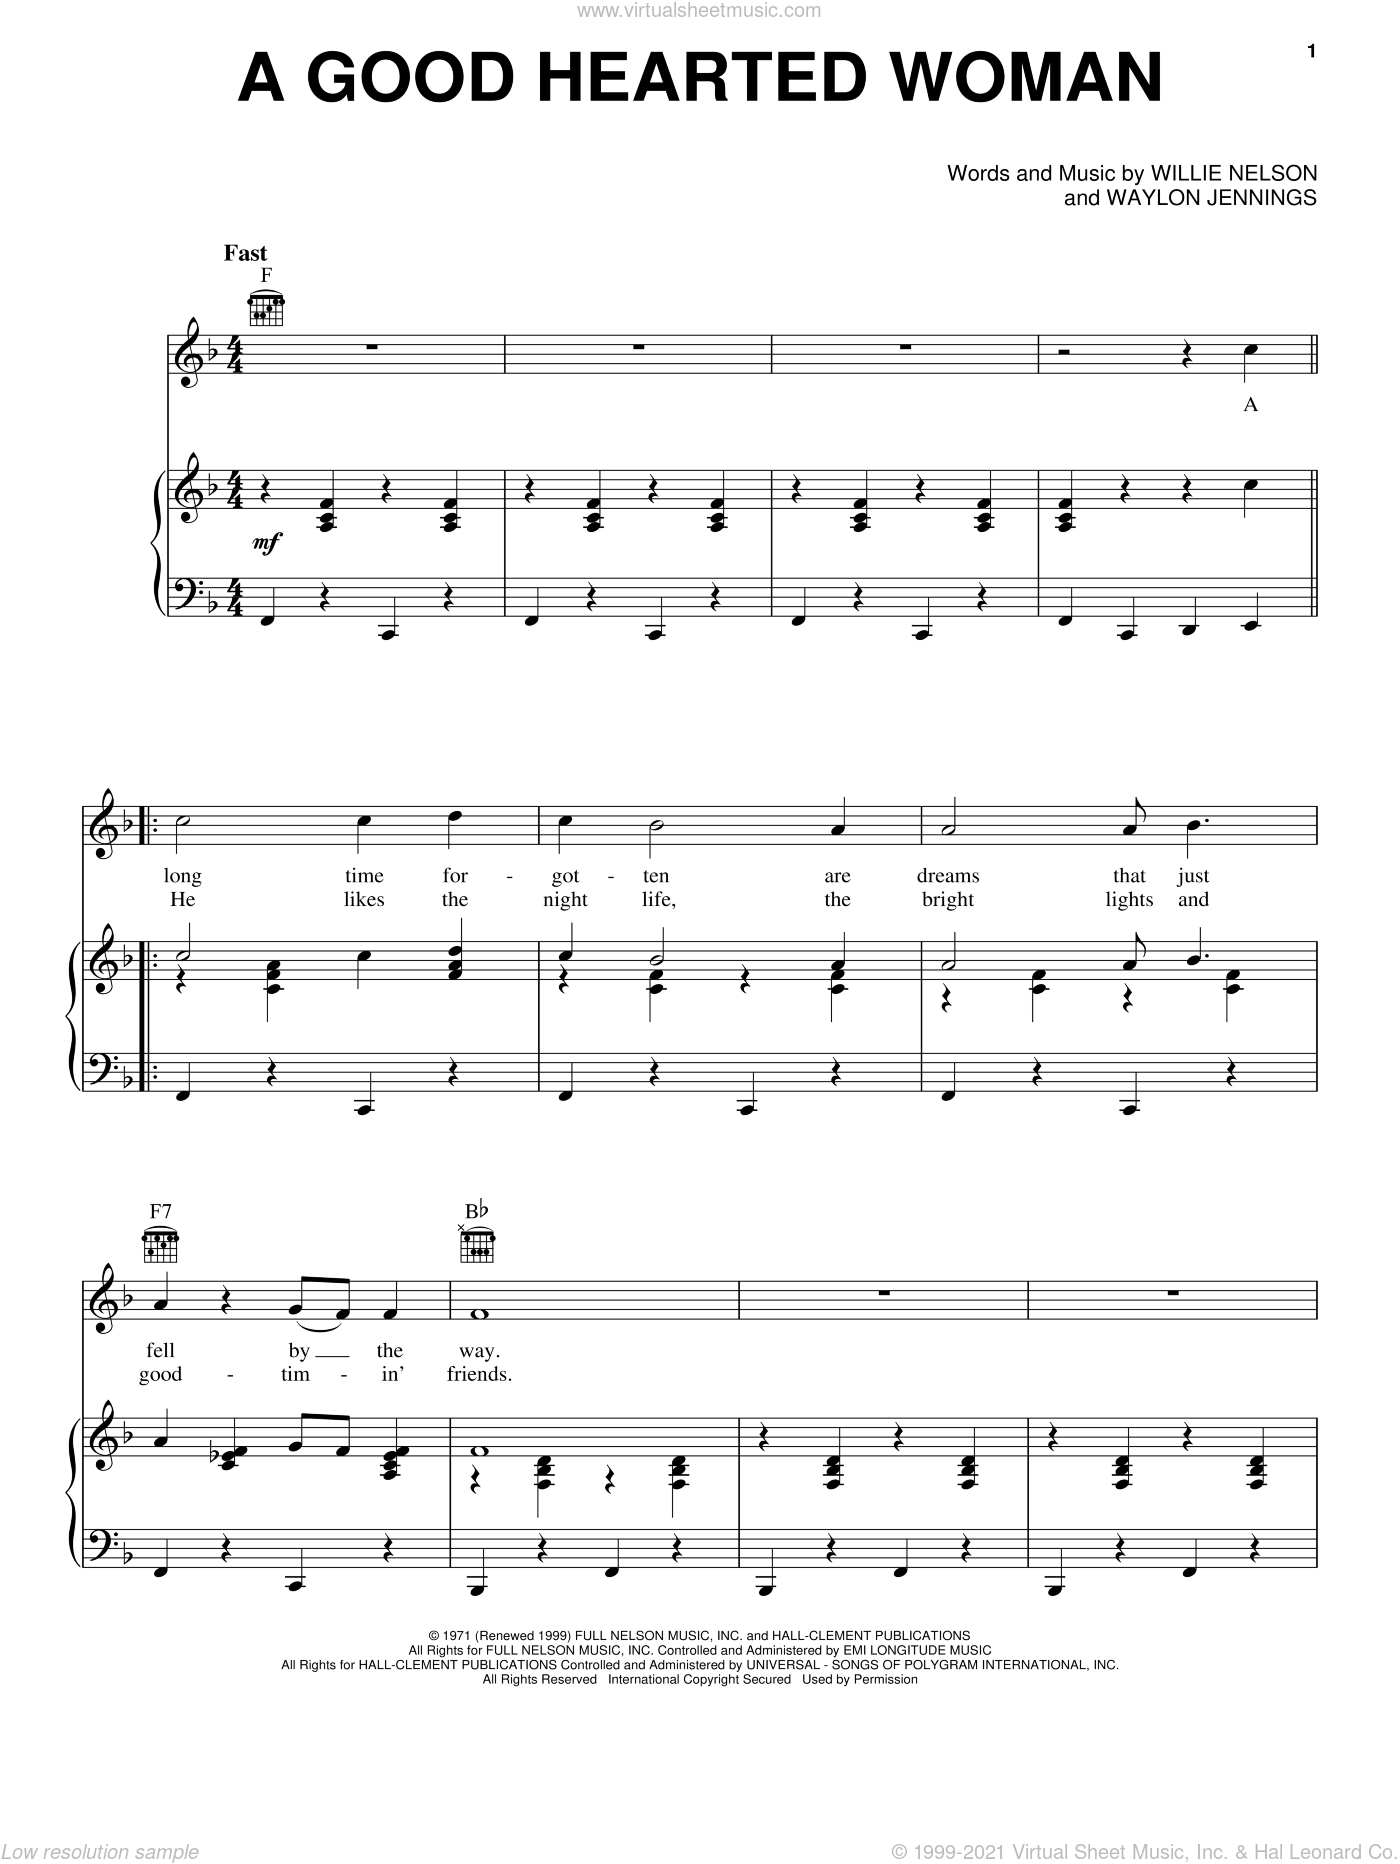 A Good Hearted Woman sheet music for voice, piano or guitar by Willie Nelson and Waylon Jennings, intermediate skill level